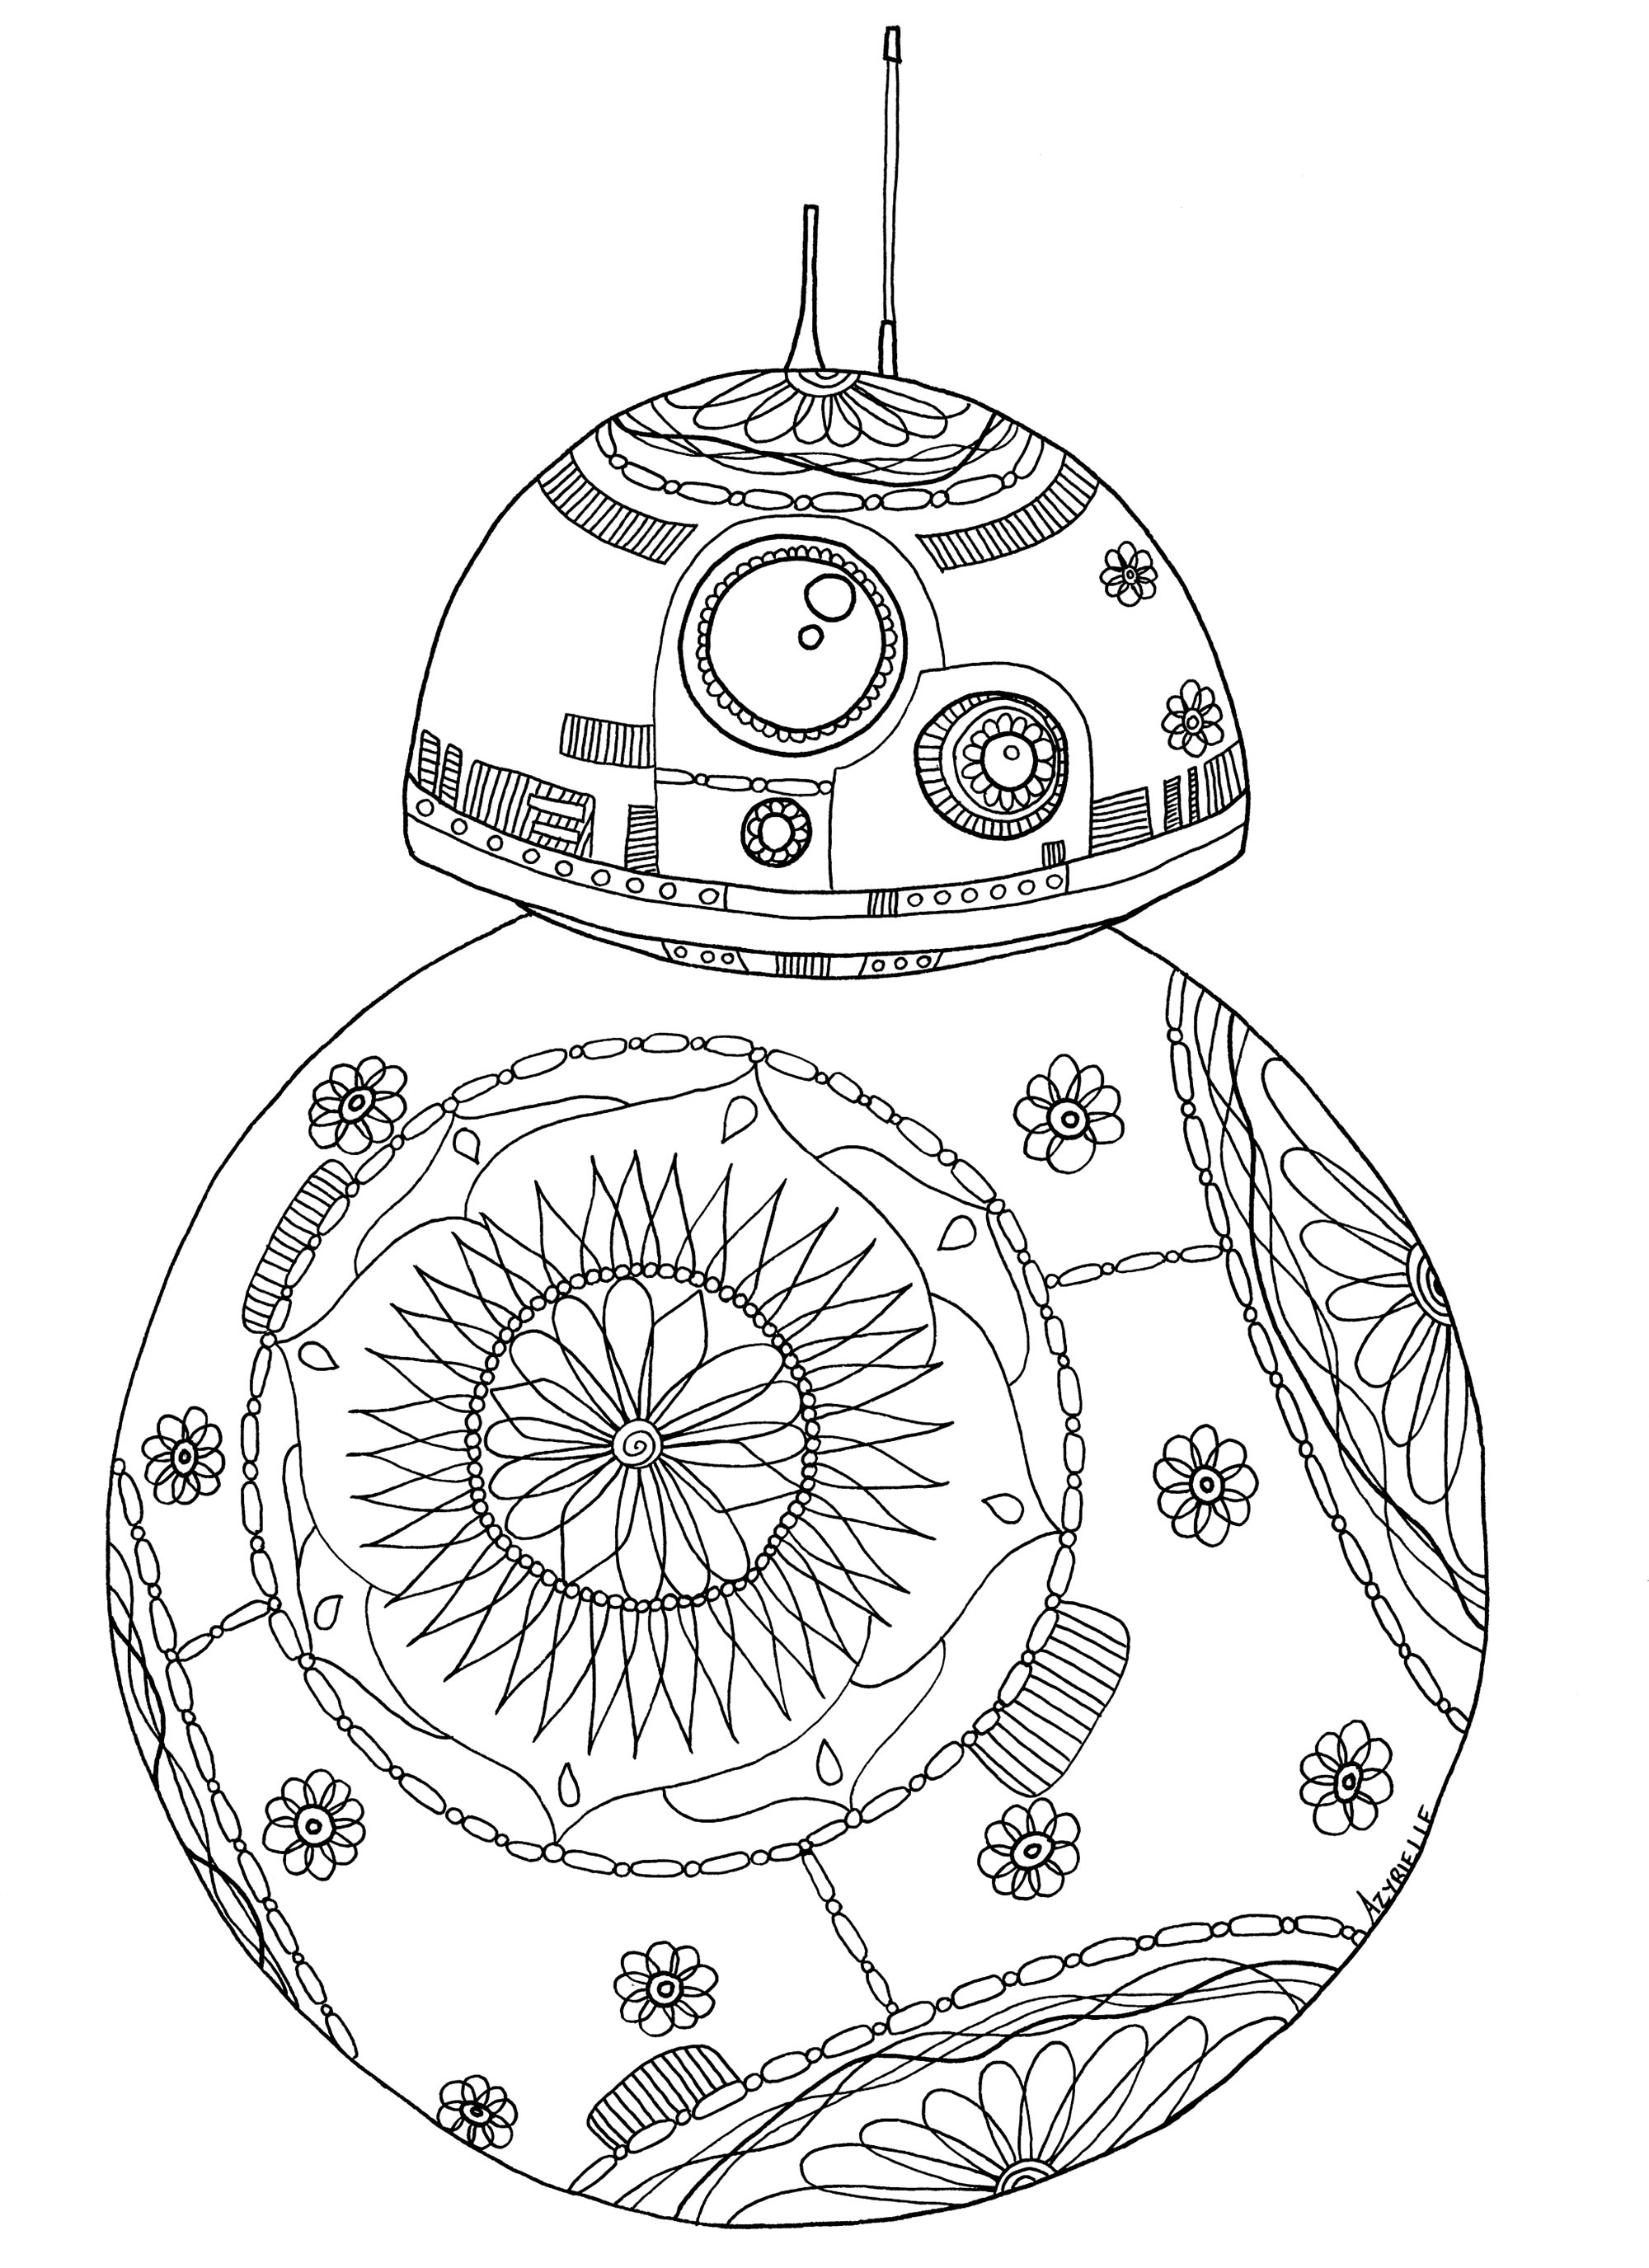 Spheros Star Wars BB 8 Droid With Cute Flowered Patterns Coloring Page Chinese Imperial Robes